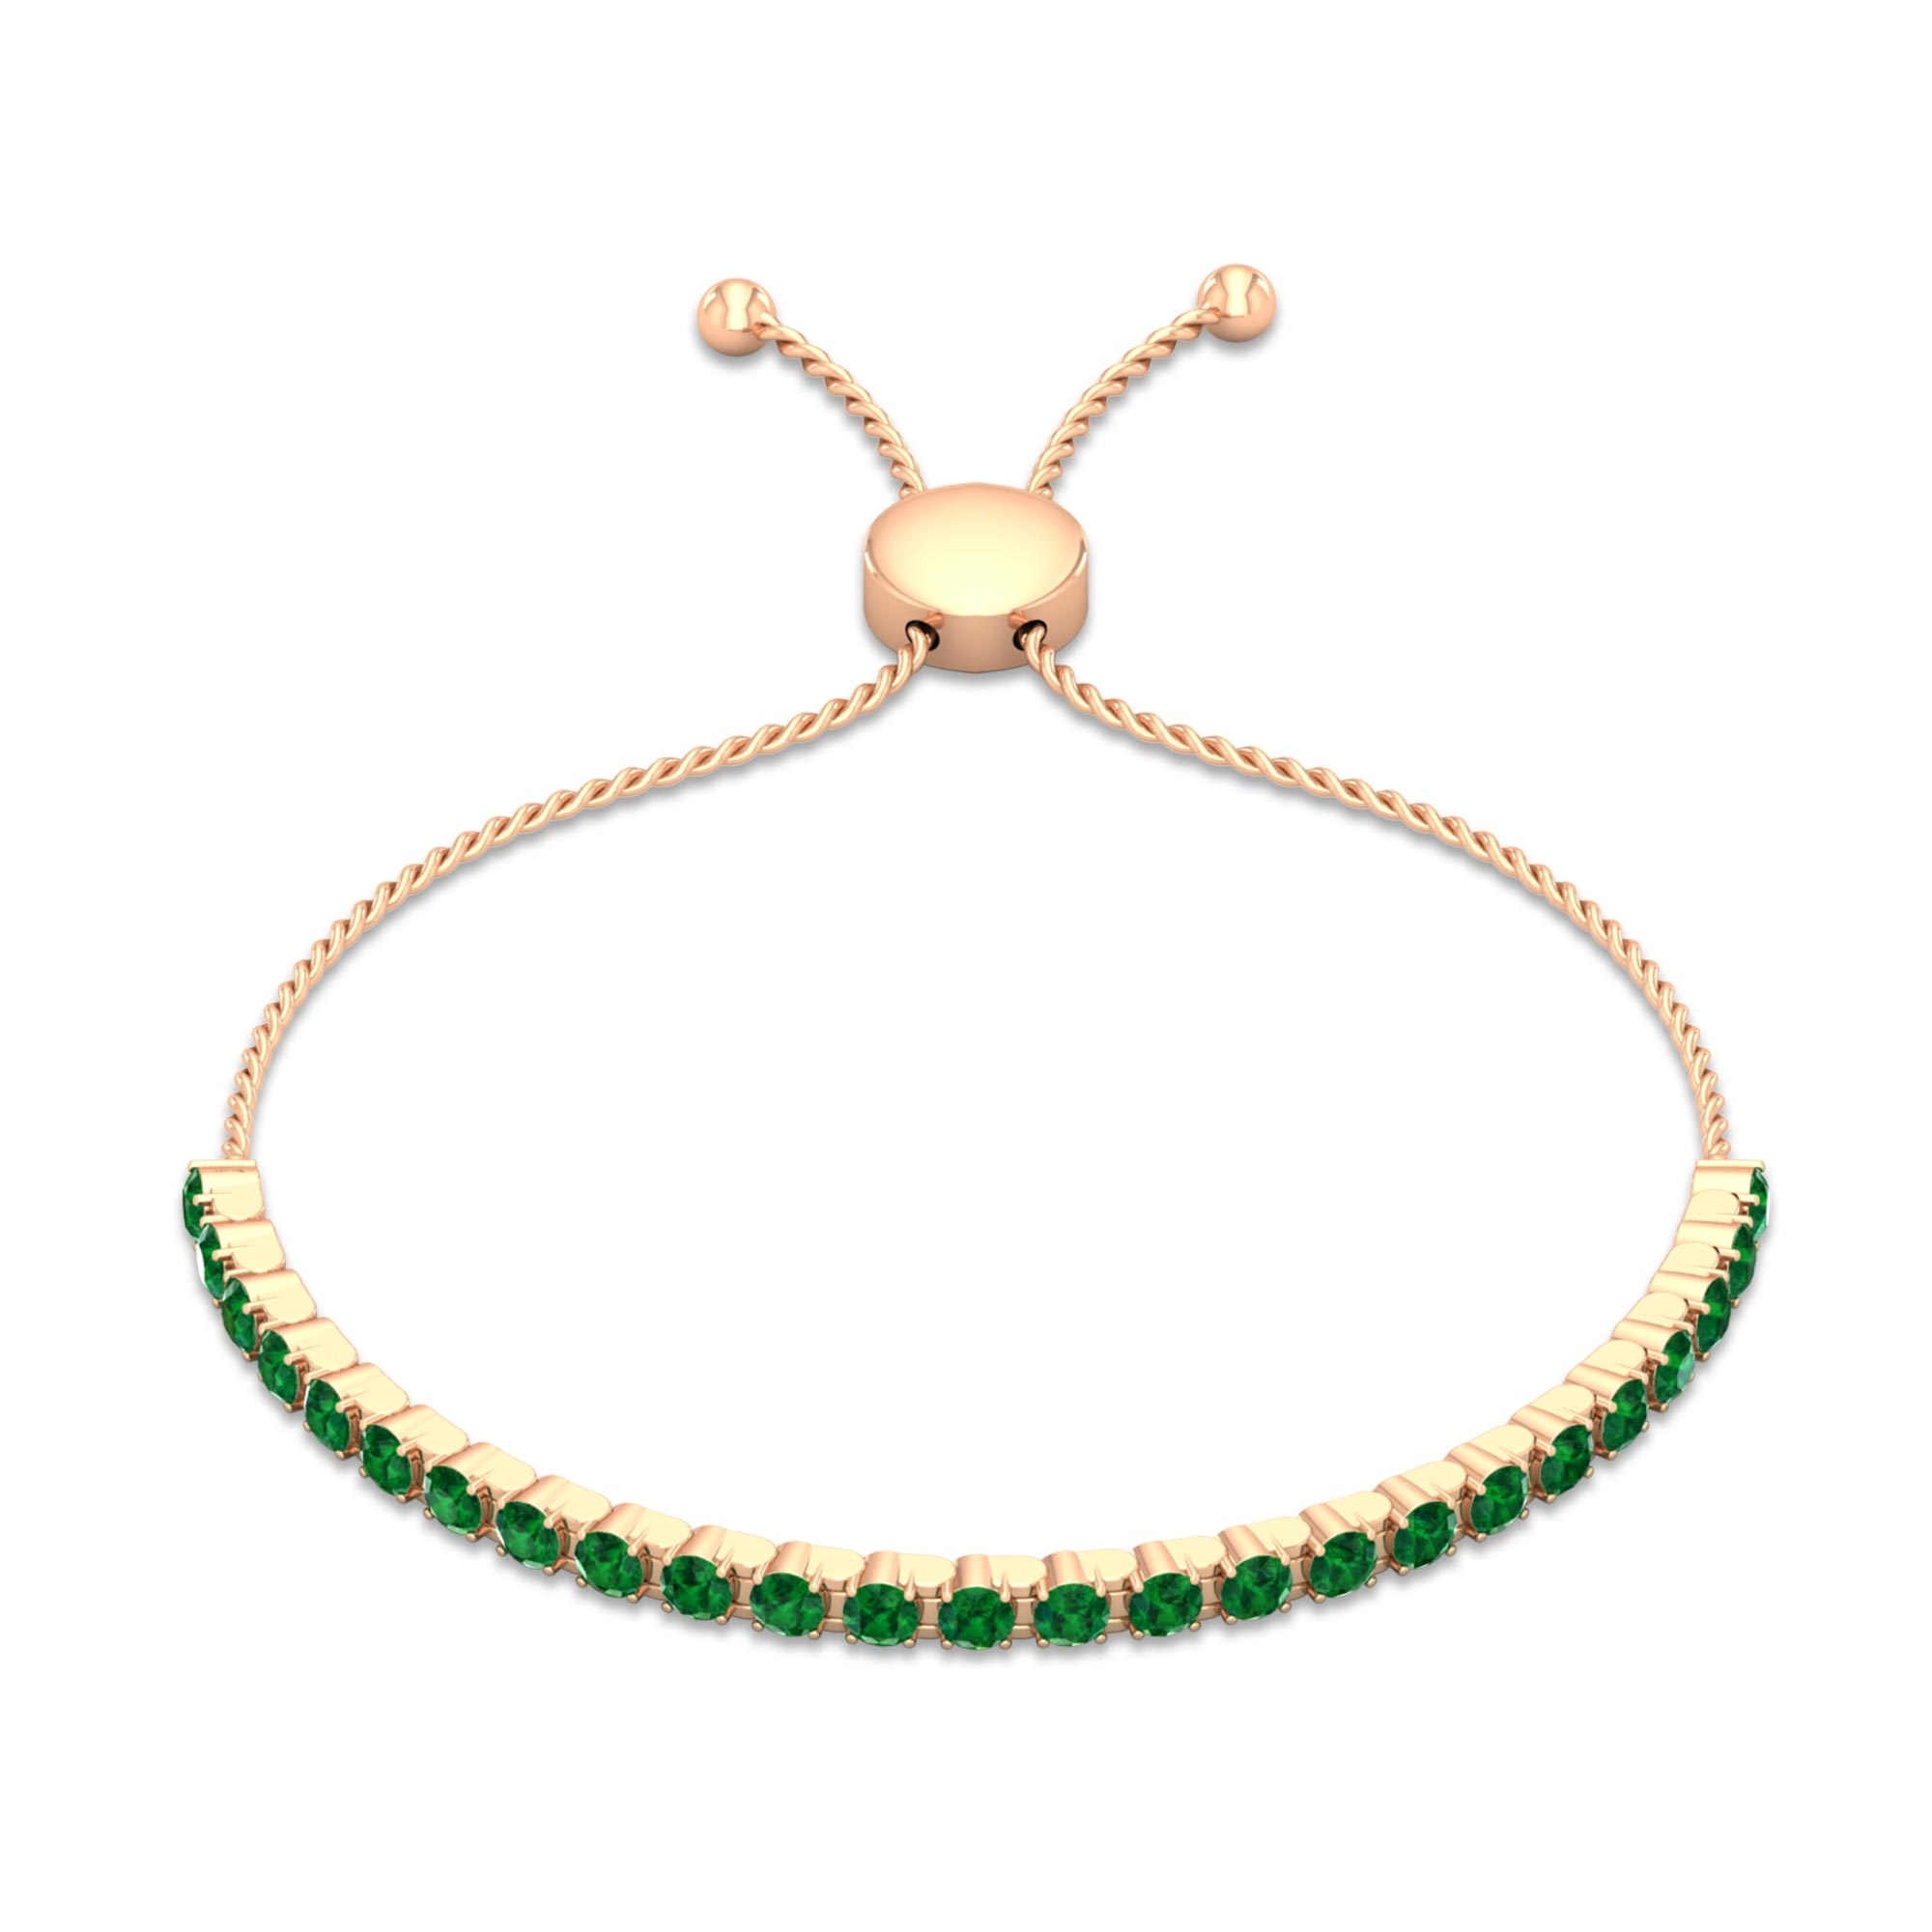 3 CT Round Cut Emerald Tennis Bolo Bracelet in Prong Setting